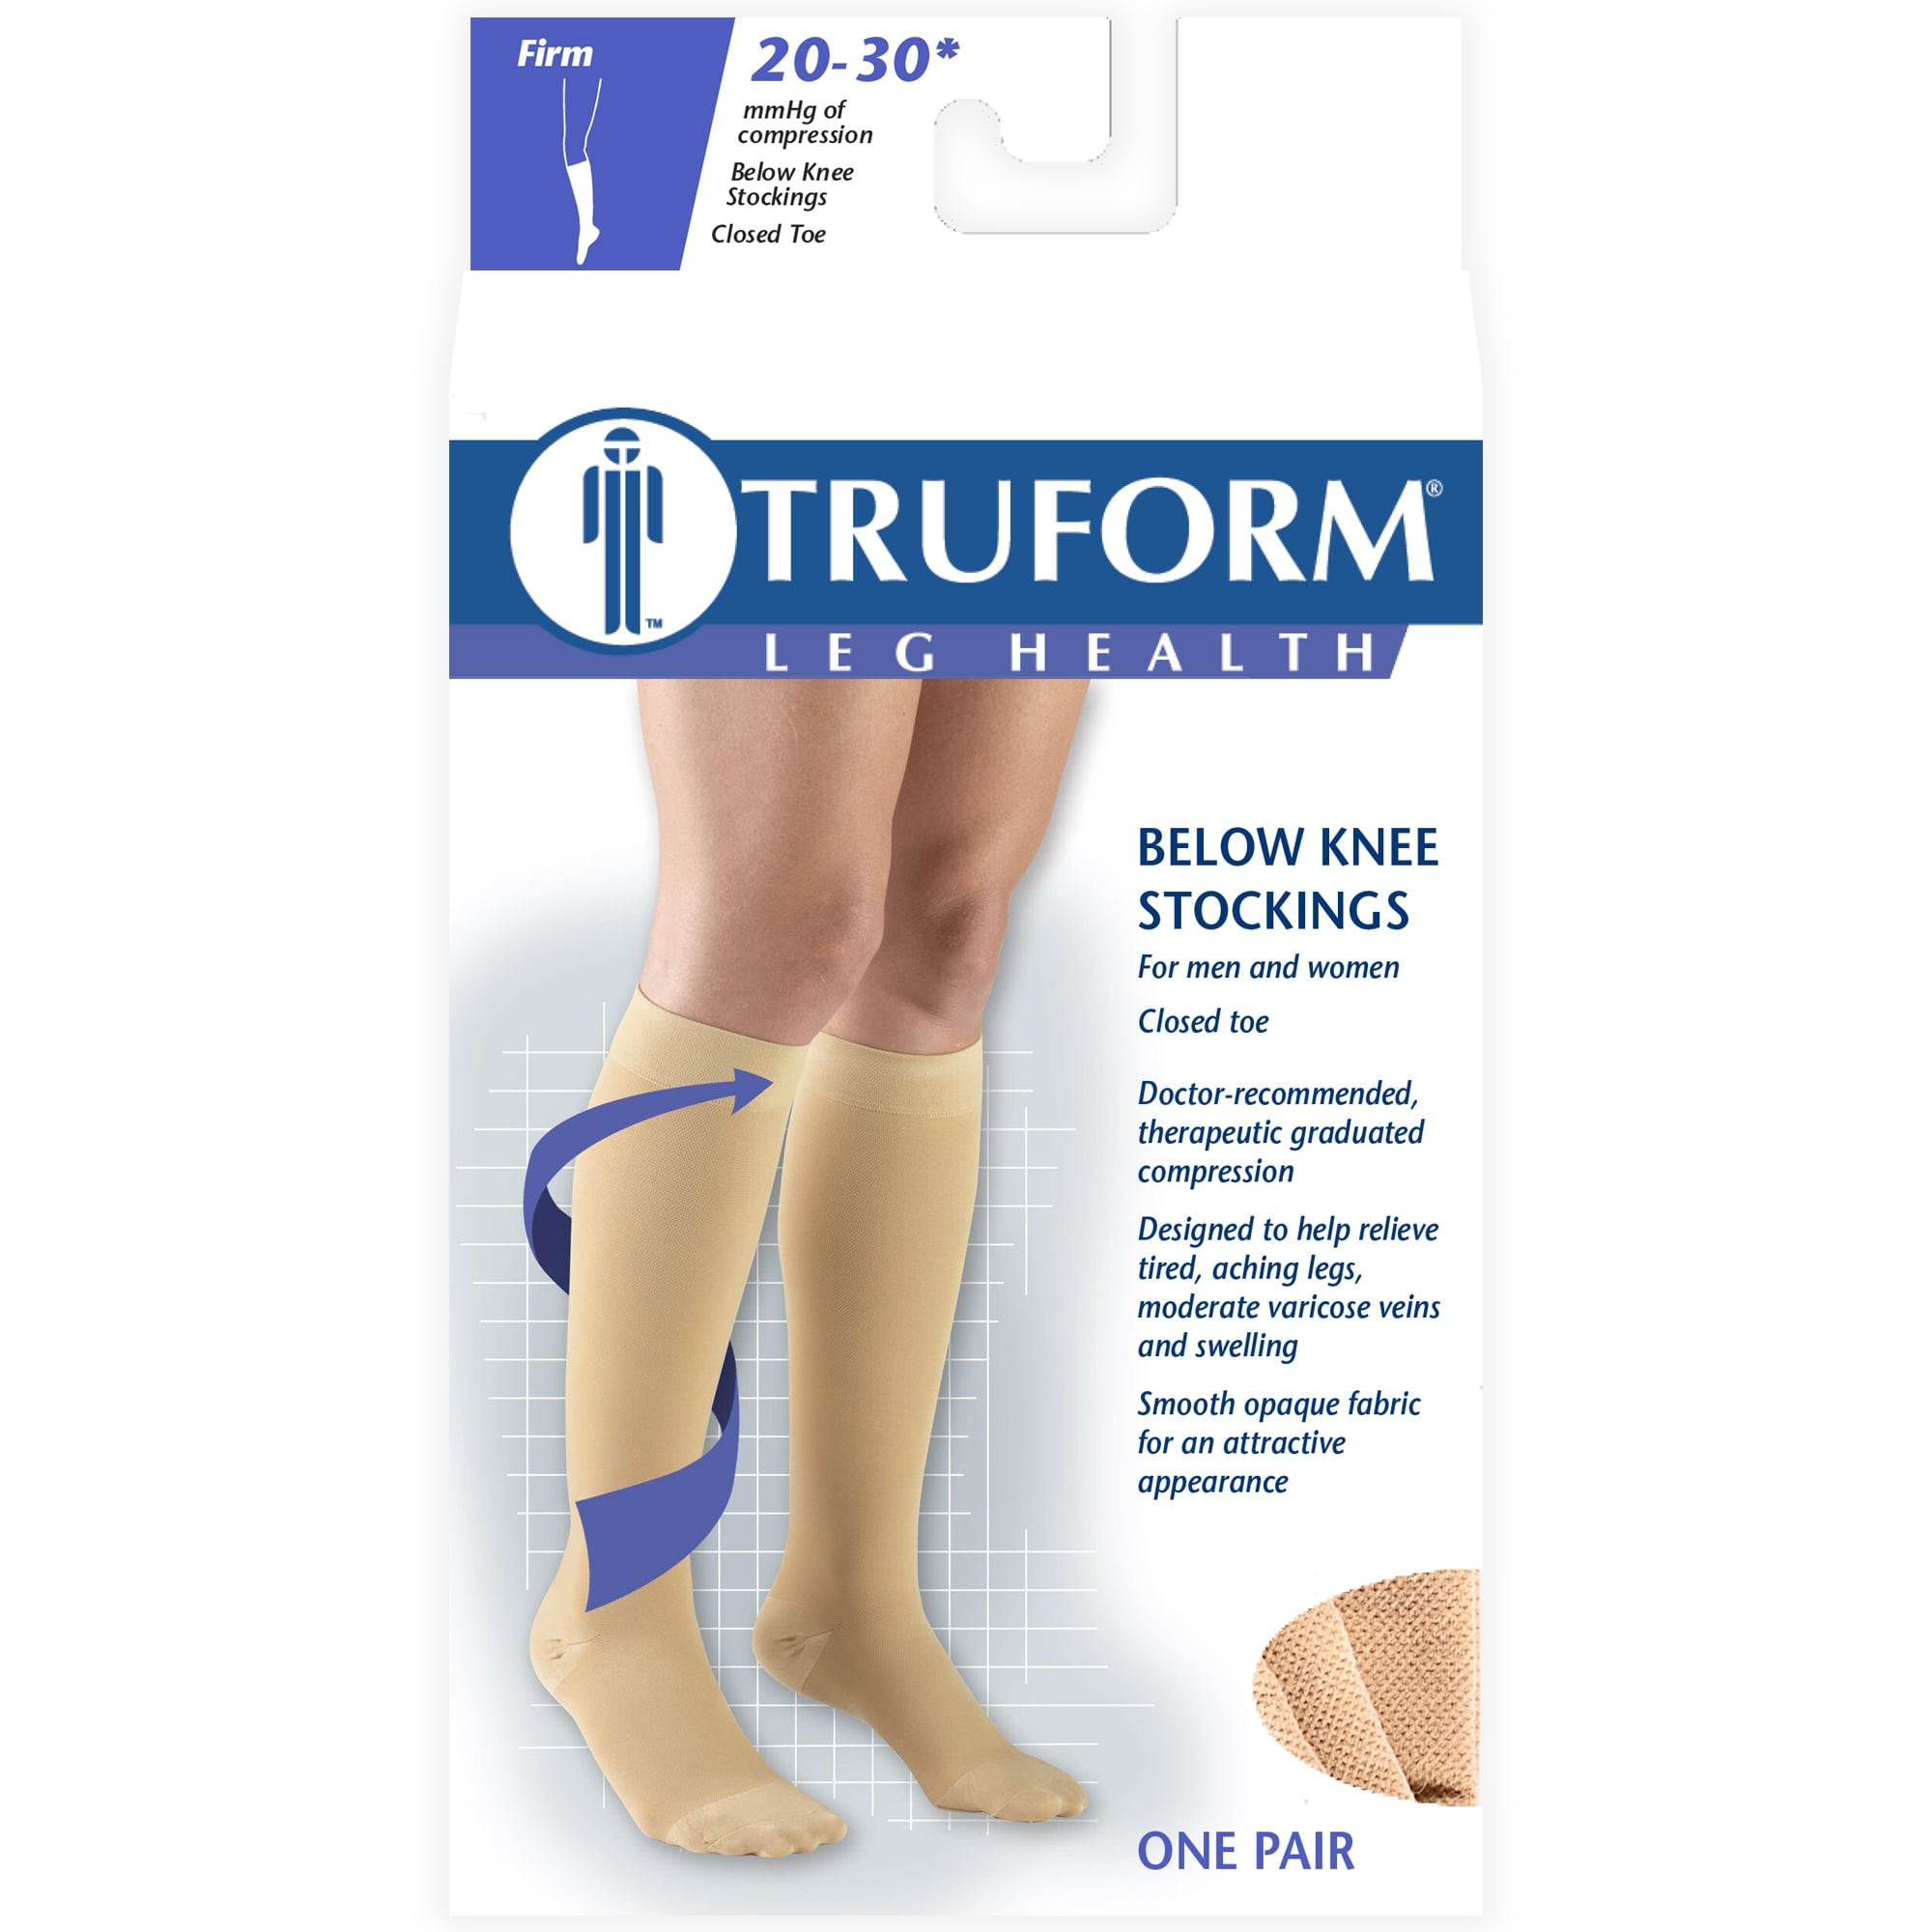 ec4e6085ac7 Truform Stockings